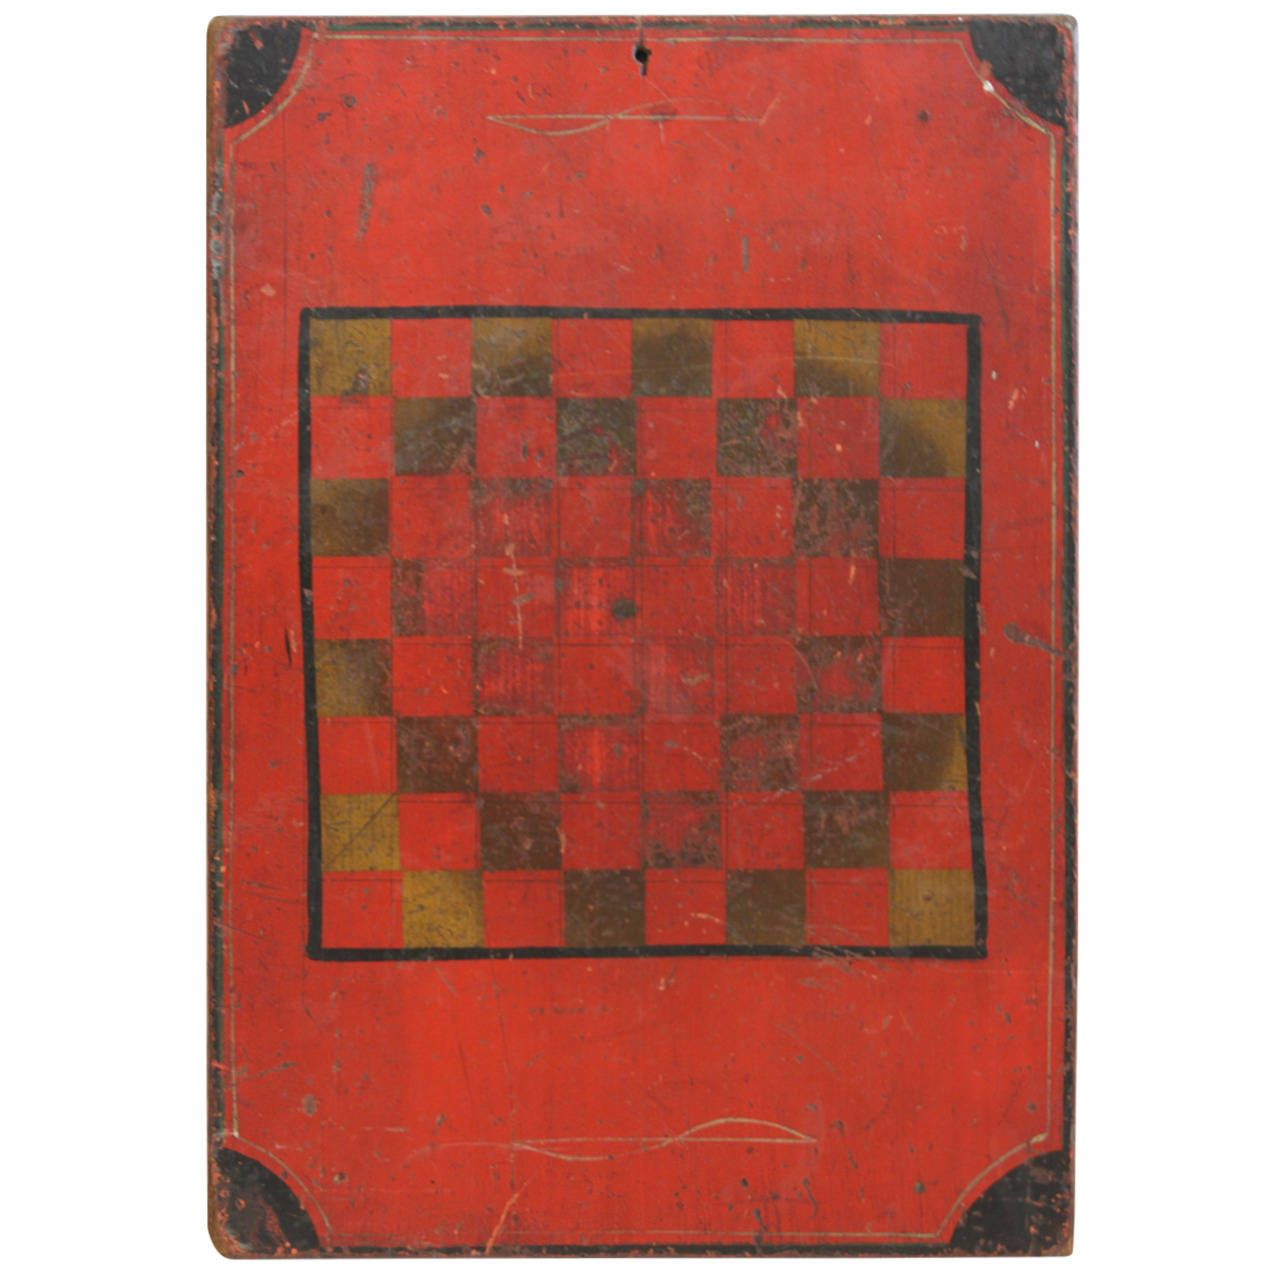 Antique American Folk Art Checker Game Board | From a unique collection of antique and modern game boards at https://www.1stdibs.com/furniture/folk-art/game-boards/